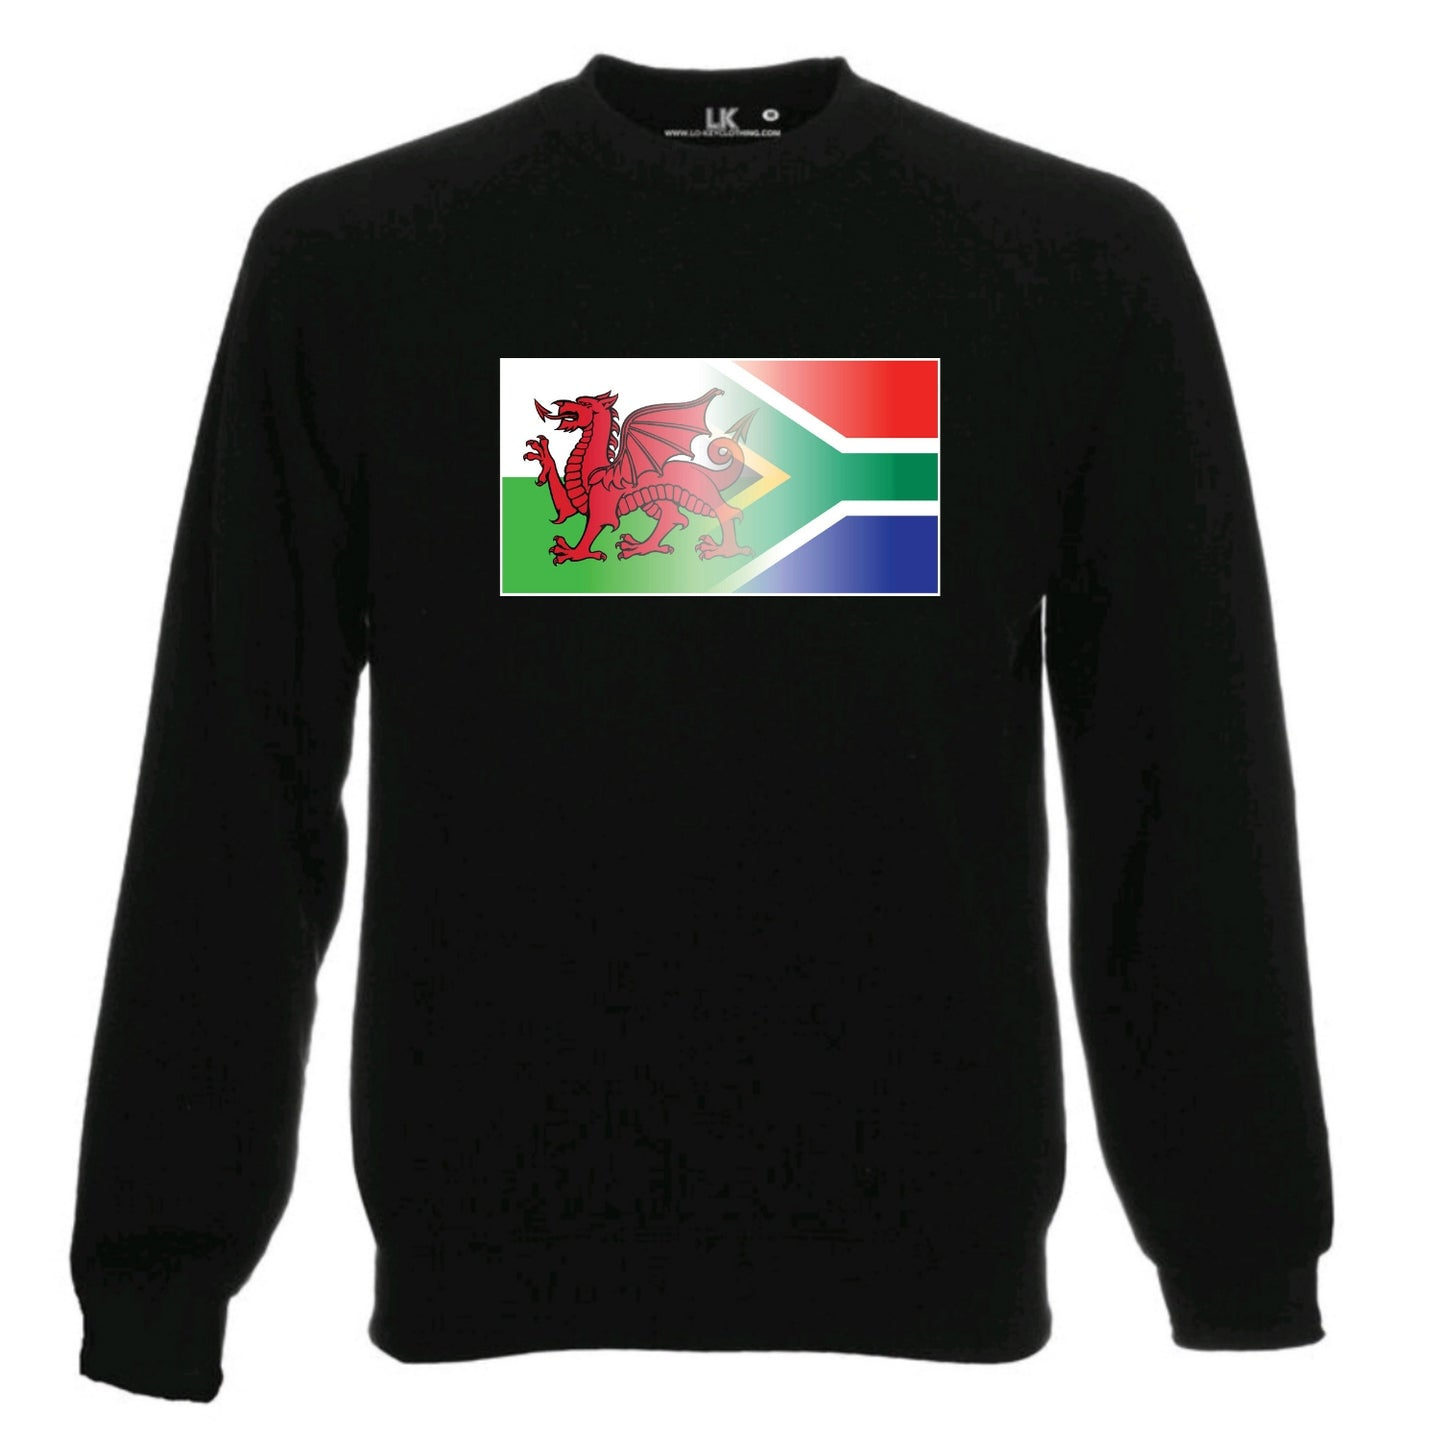 Welsh & South Africa Flag Blend Sweatshirt